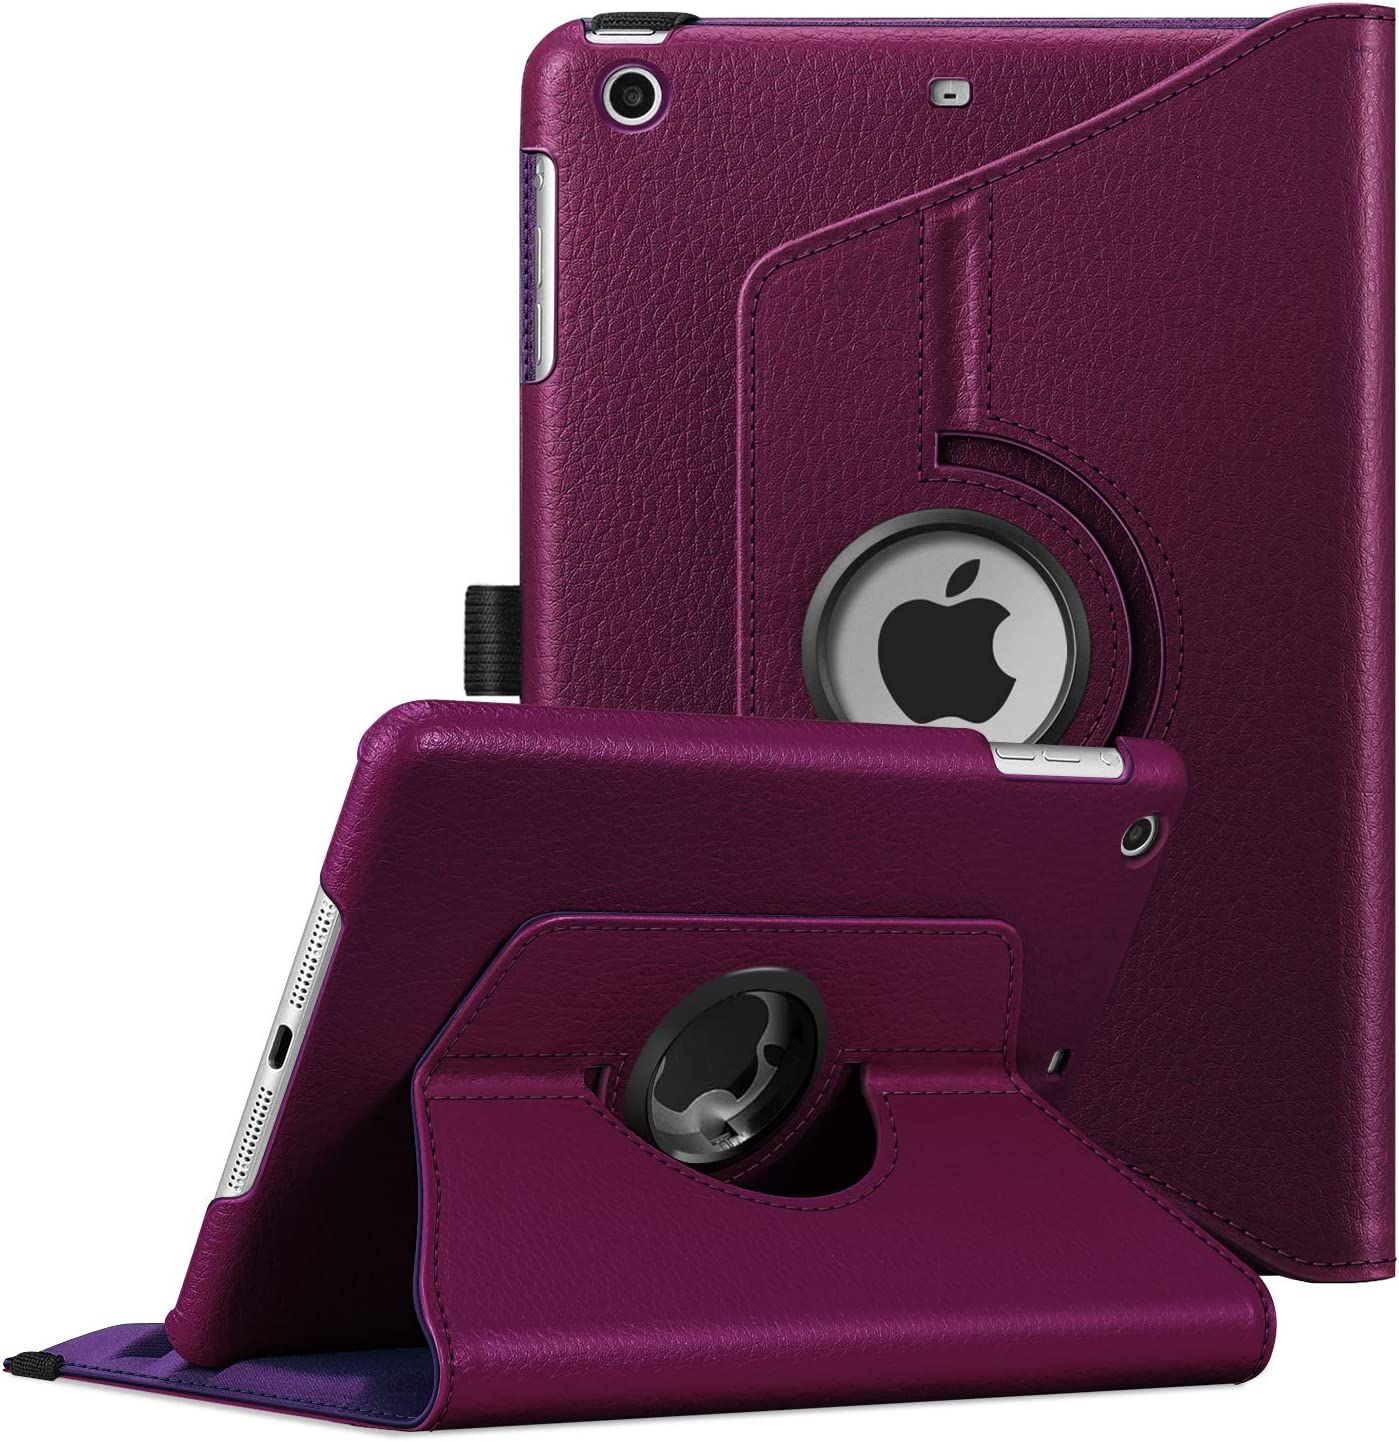 Fintie Rotating Case for iPad Mini 3/2 / 1-360 Degree Rotating Smart Stand Protective Cover with Auto Sleep/Wake for iPad Mini 1 / iPad Mini 2 / iPad Mini 3, Purple